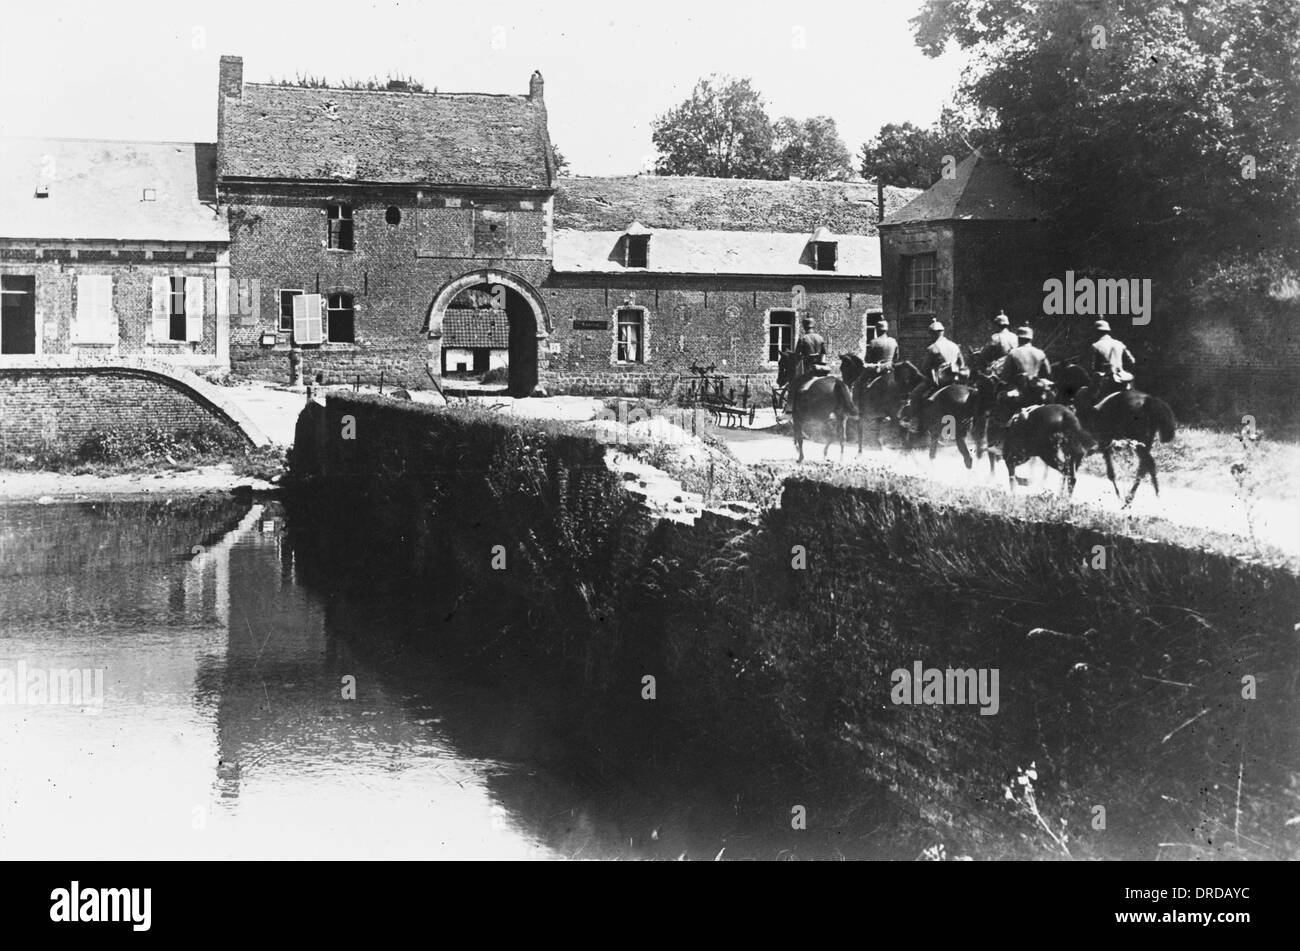 German cavalry in France WWI - Stock Image